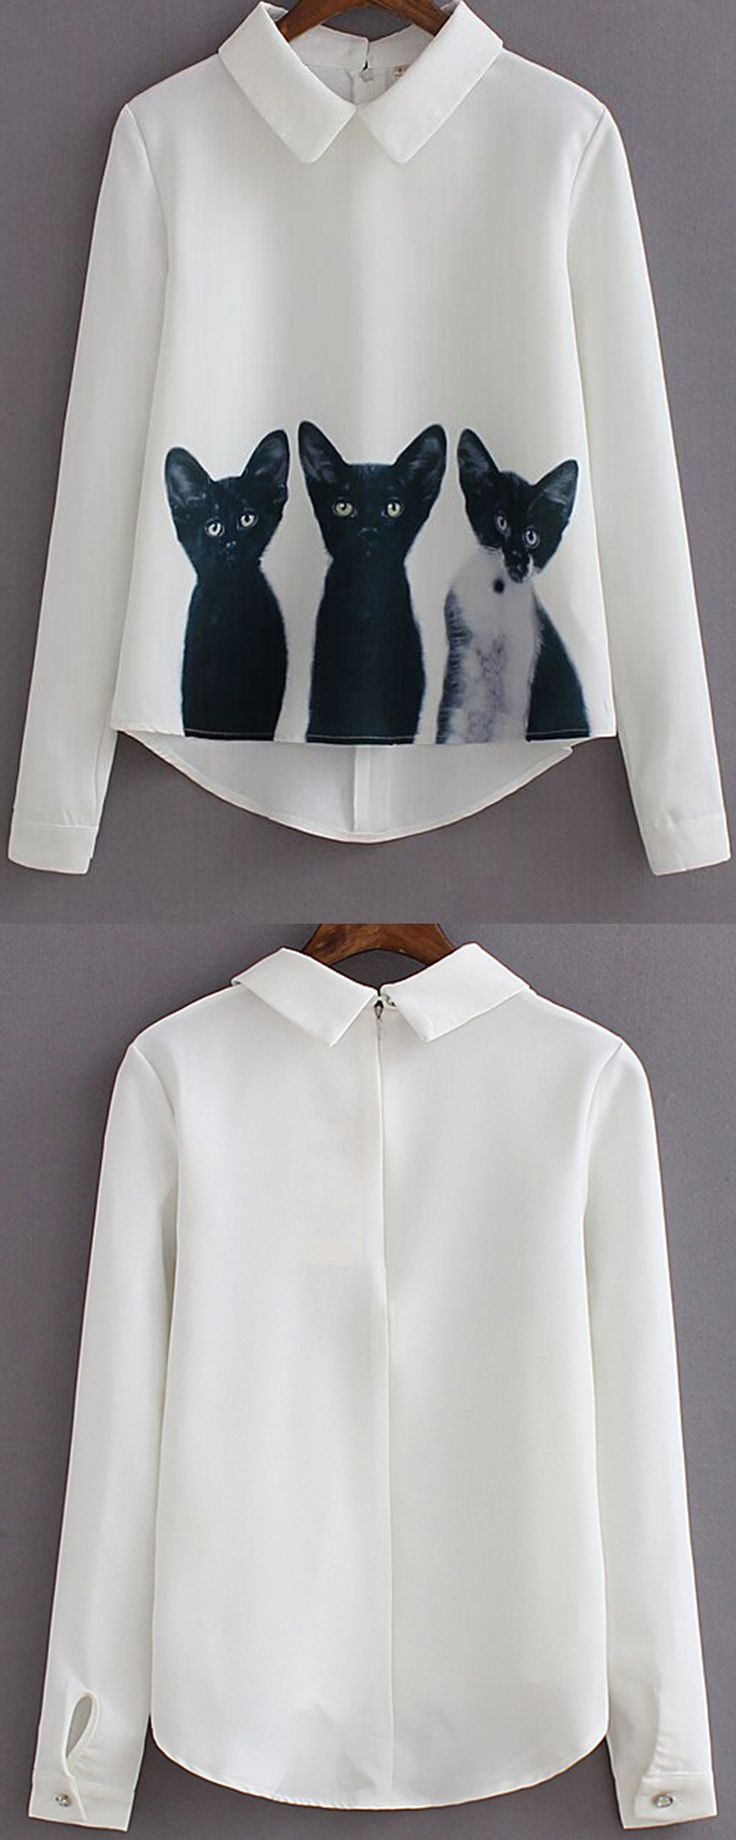 Cute white cat print shirt blouse at romwe.com. High low design with long sleeve make it that fashion& versatile!